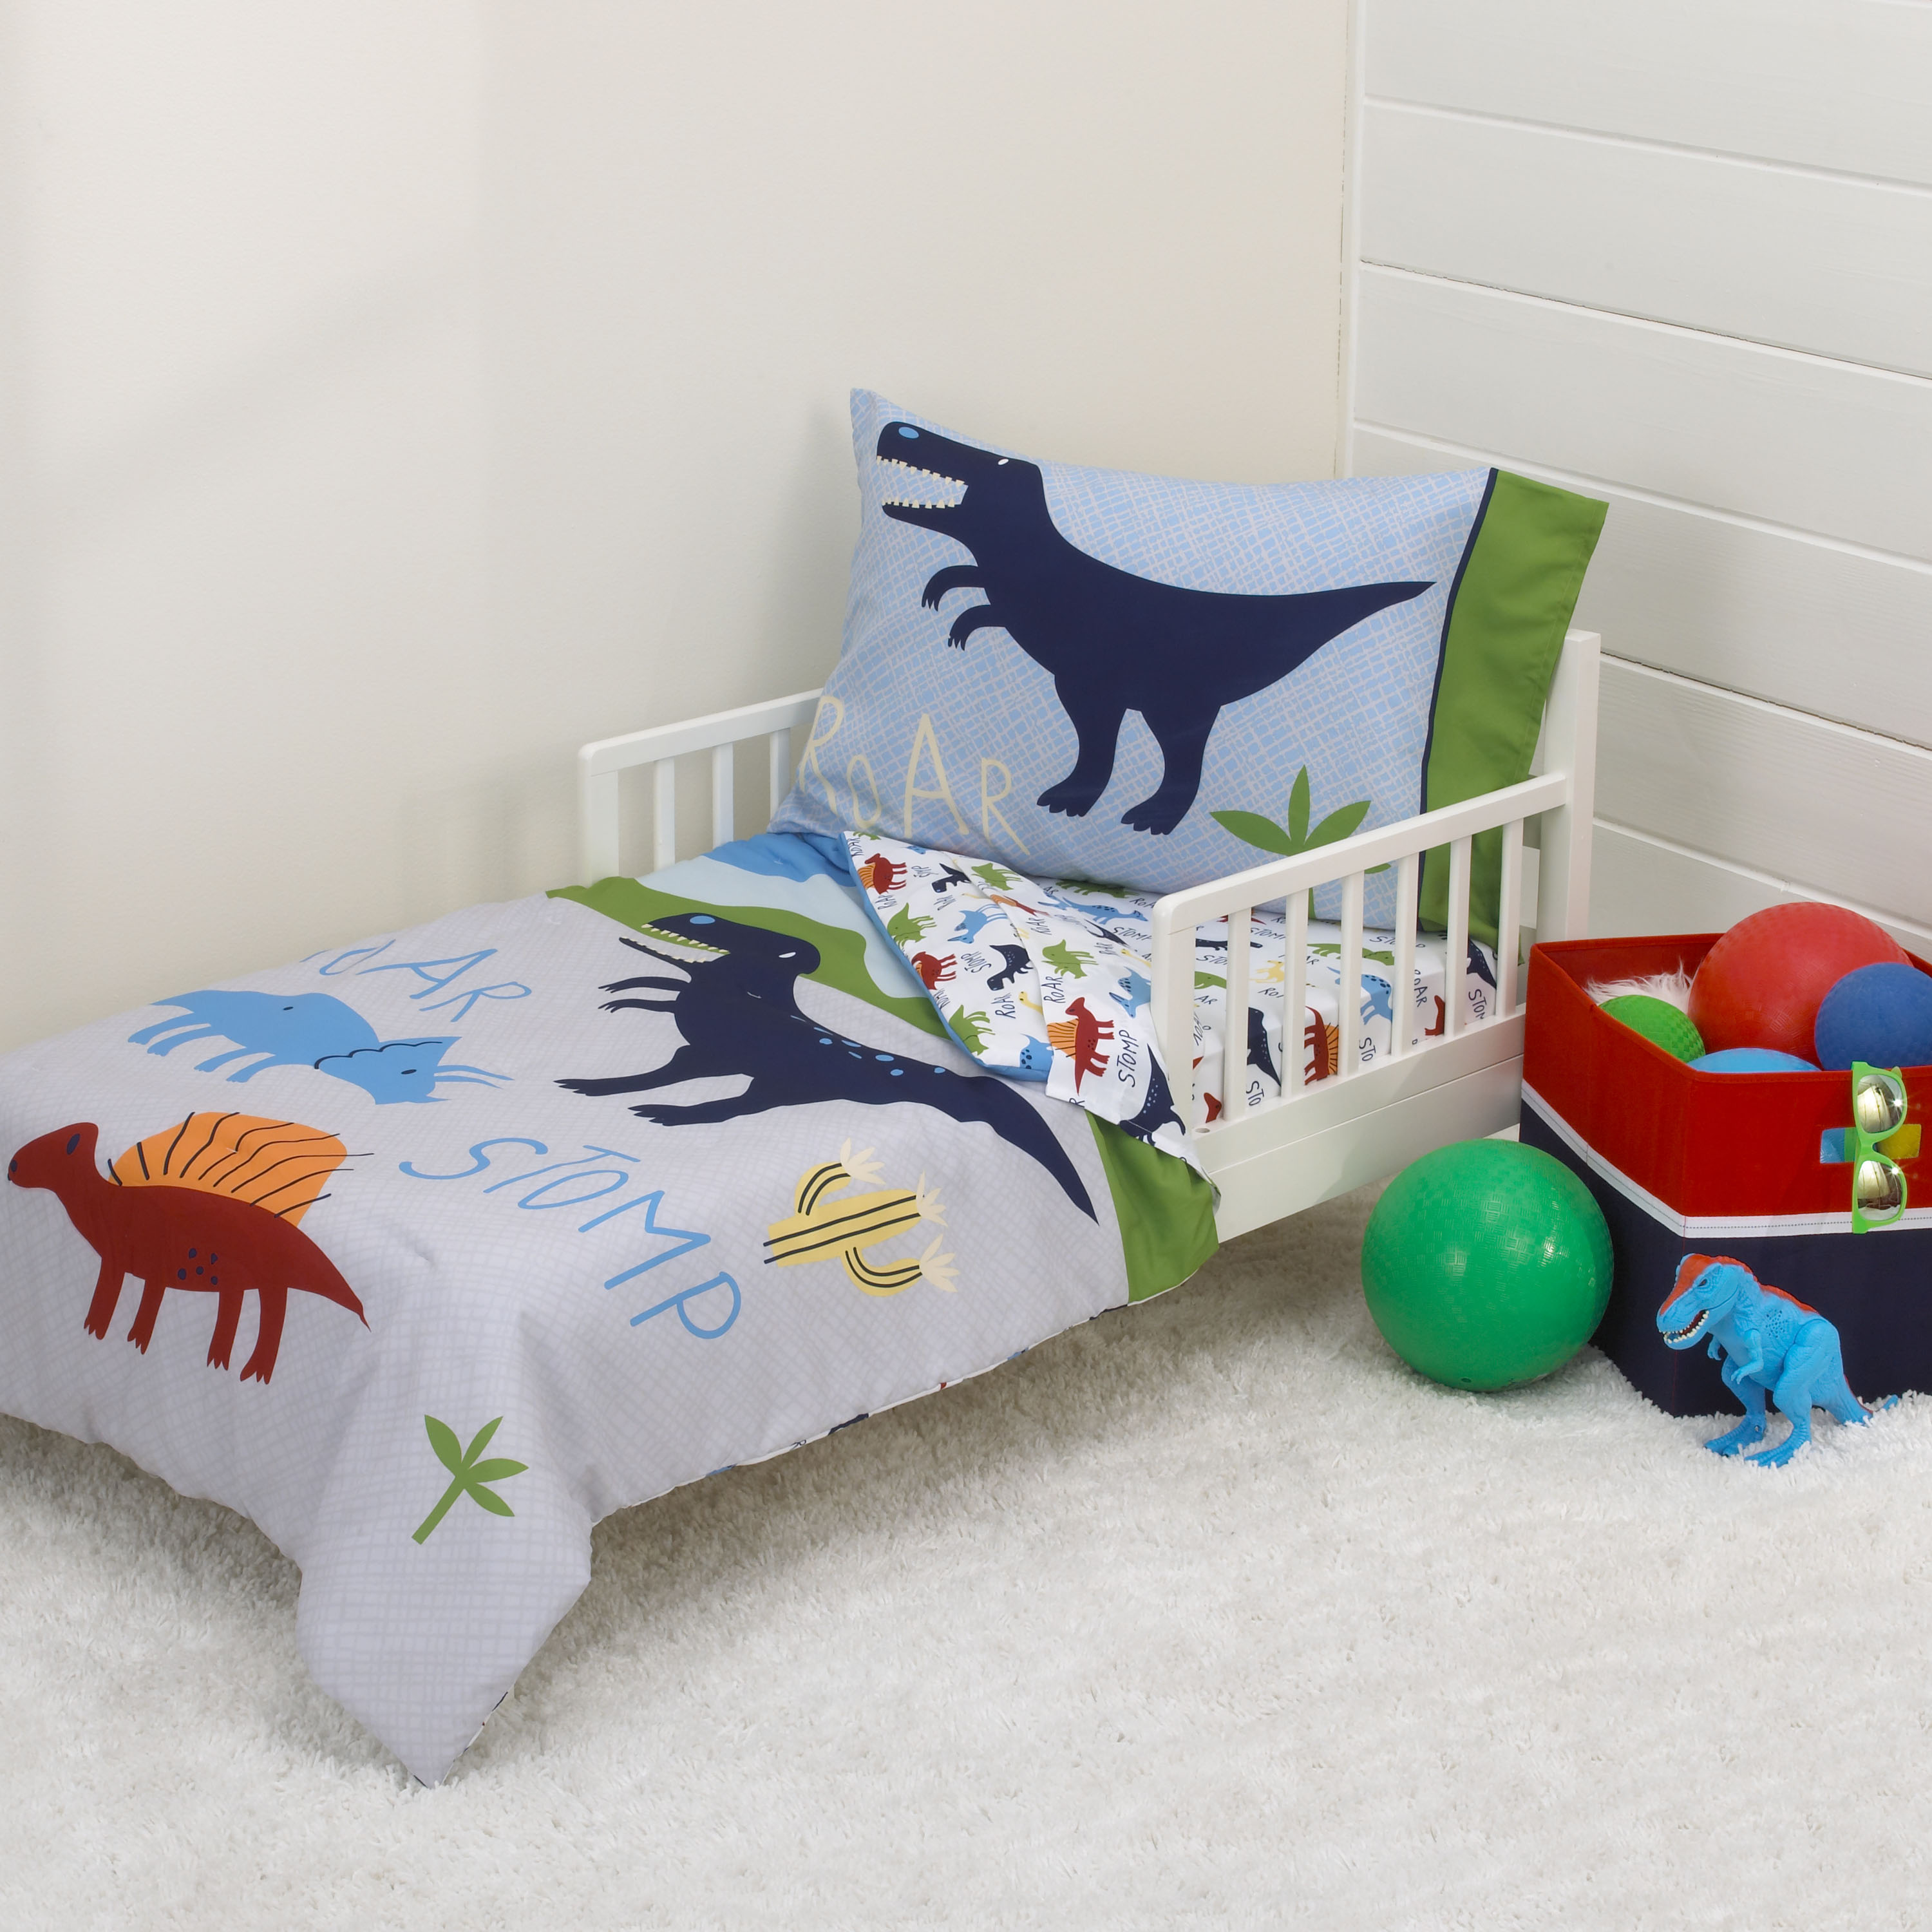 Parent's Choice Dino Boy Blue, Green, Grey 4pc Toddler Bedding Set by Crown Crafts Infant Products, Inc.